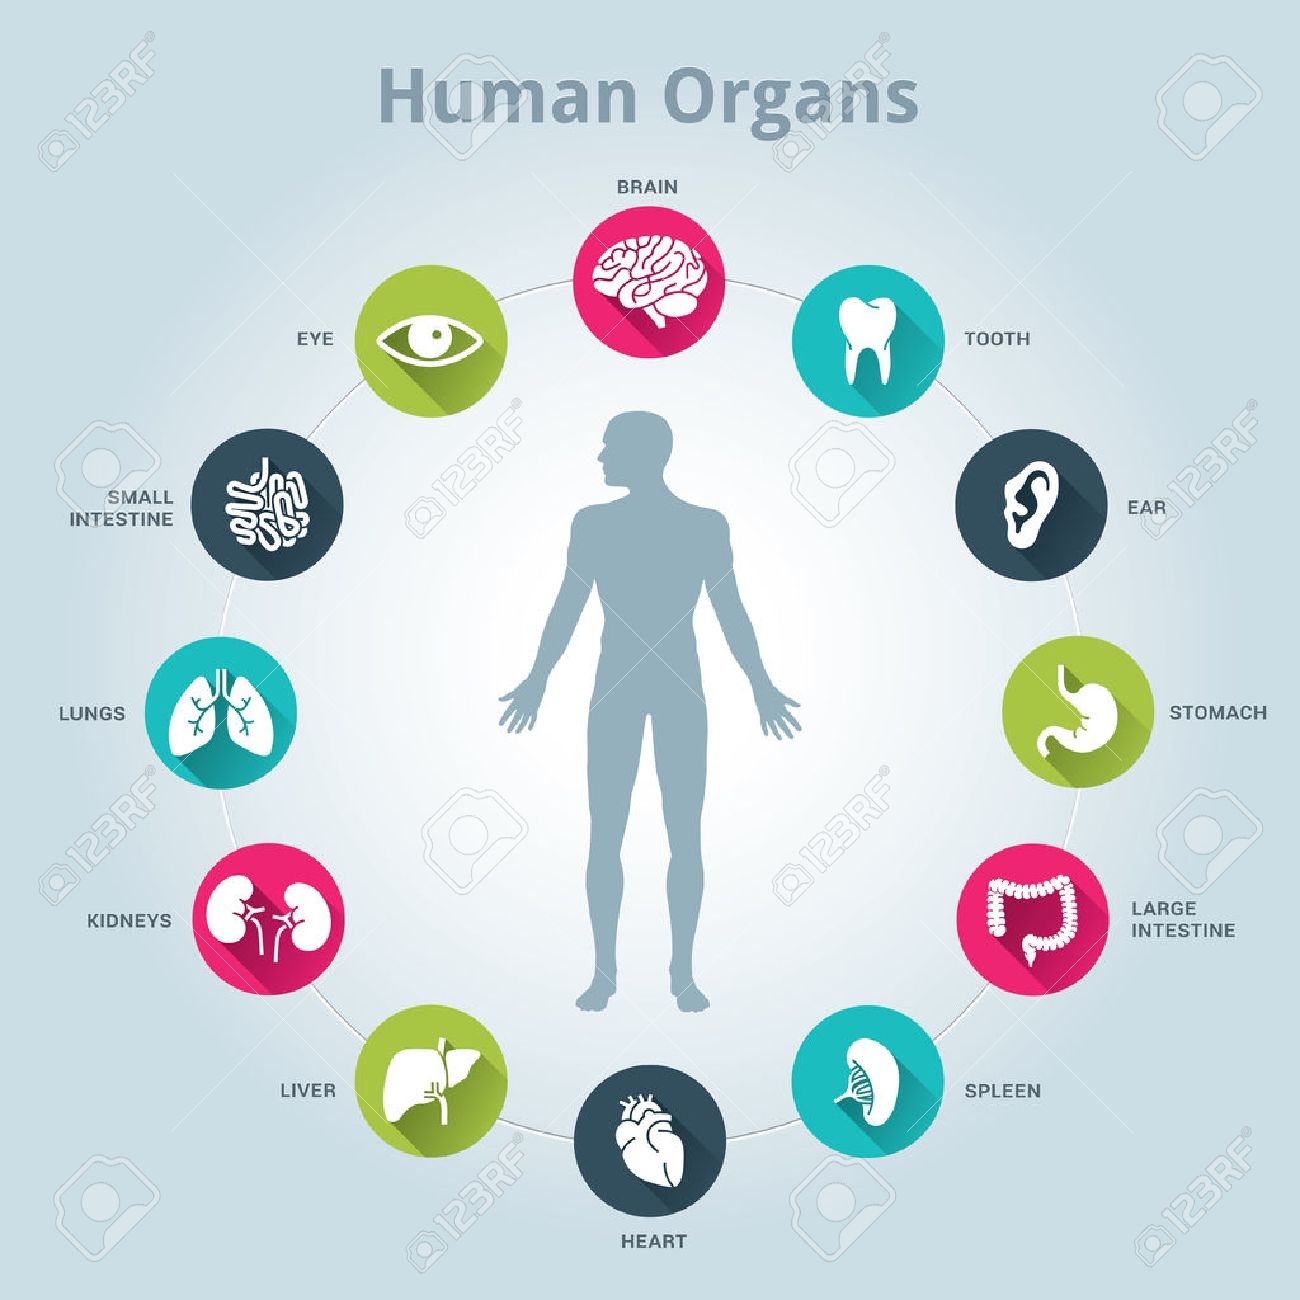 Medical Human Organs Icon Set With Body In The Middle Royalty Free ...